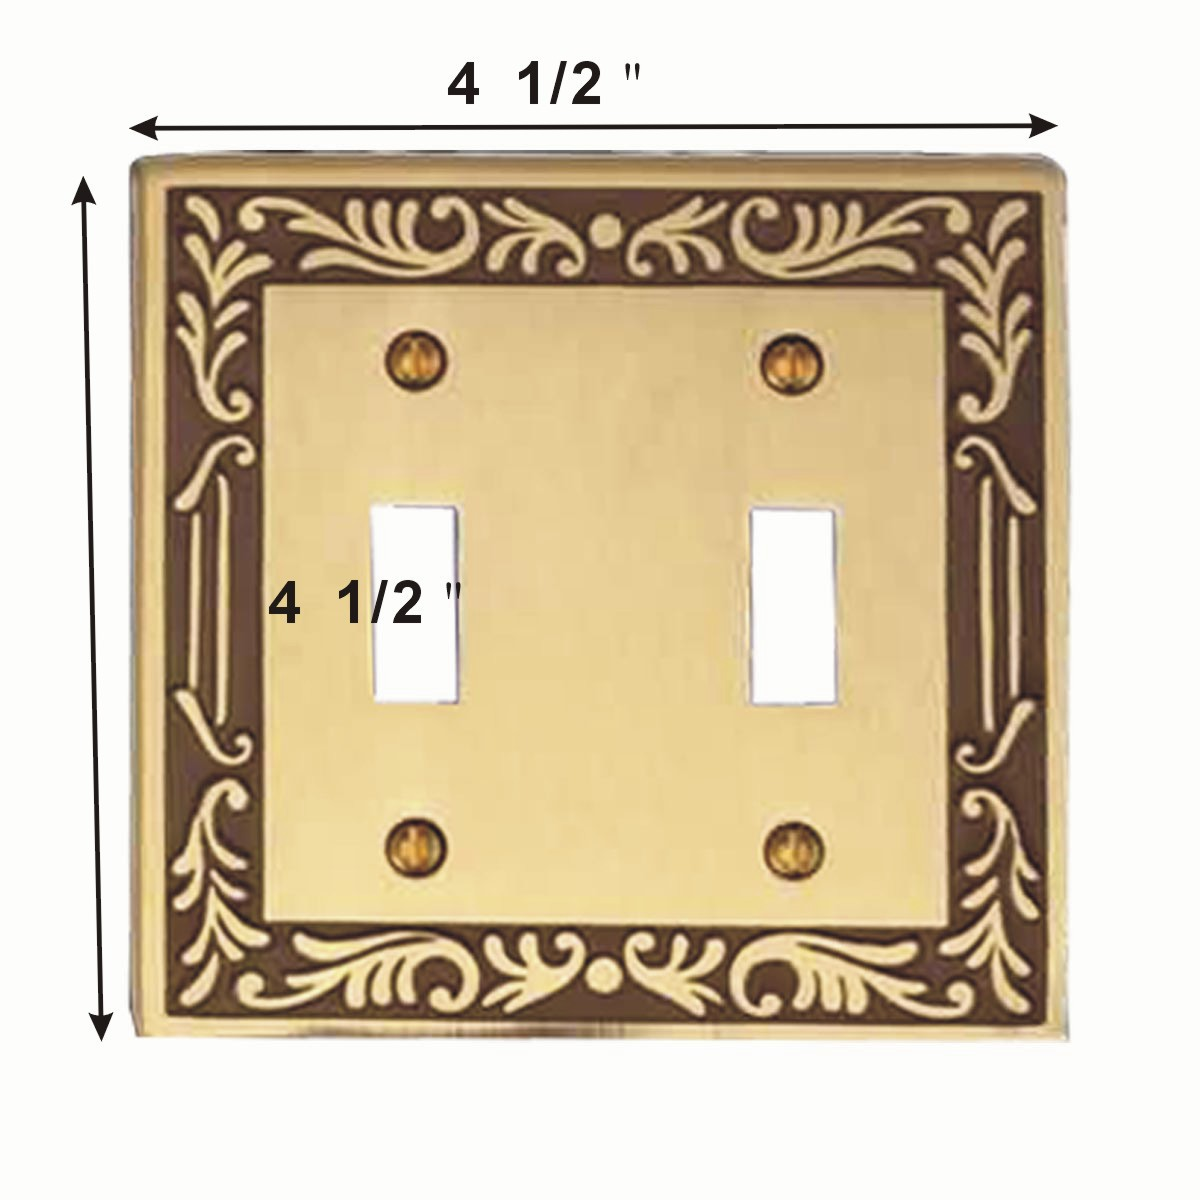 2 Victorian Switch Plate Double Toggle Antique Solid Brass